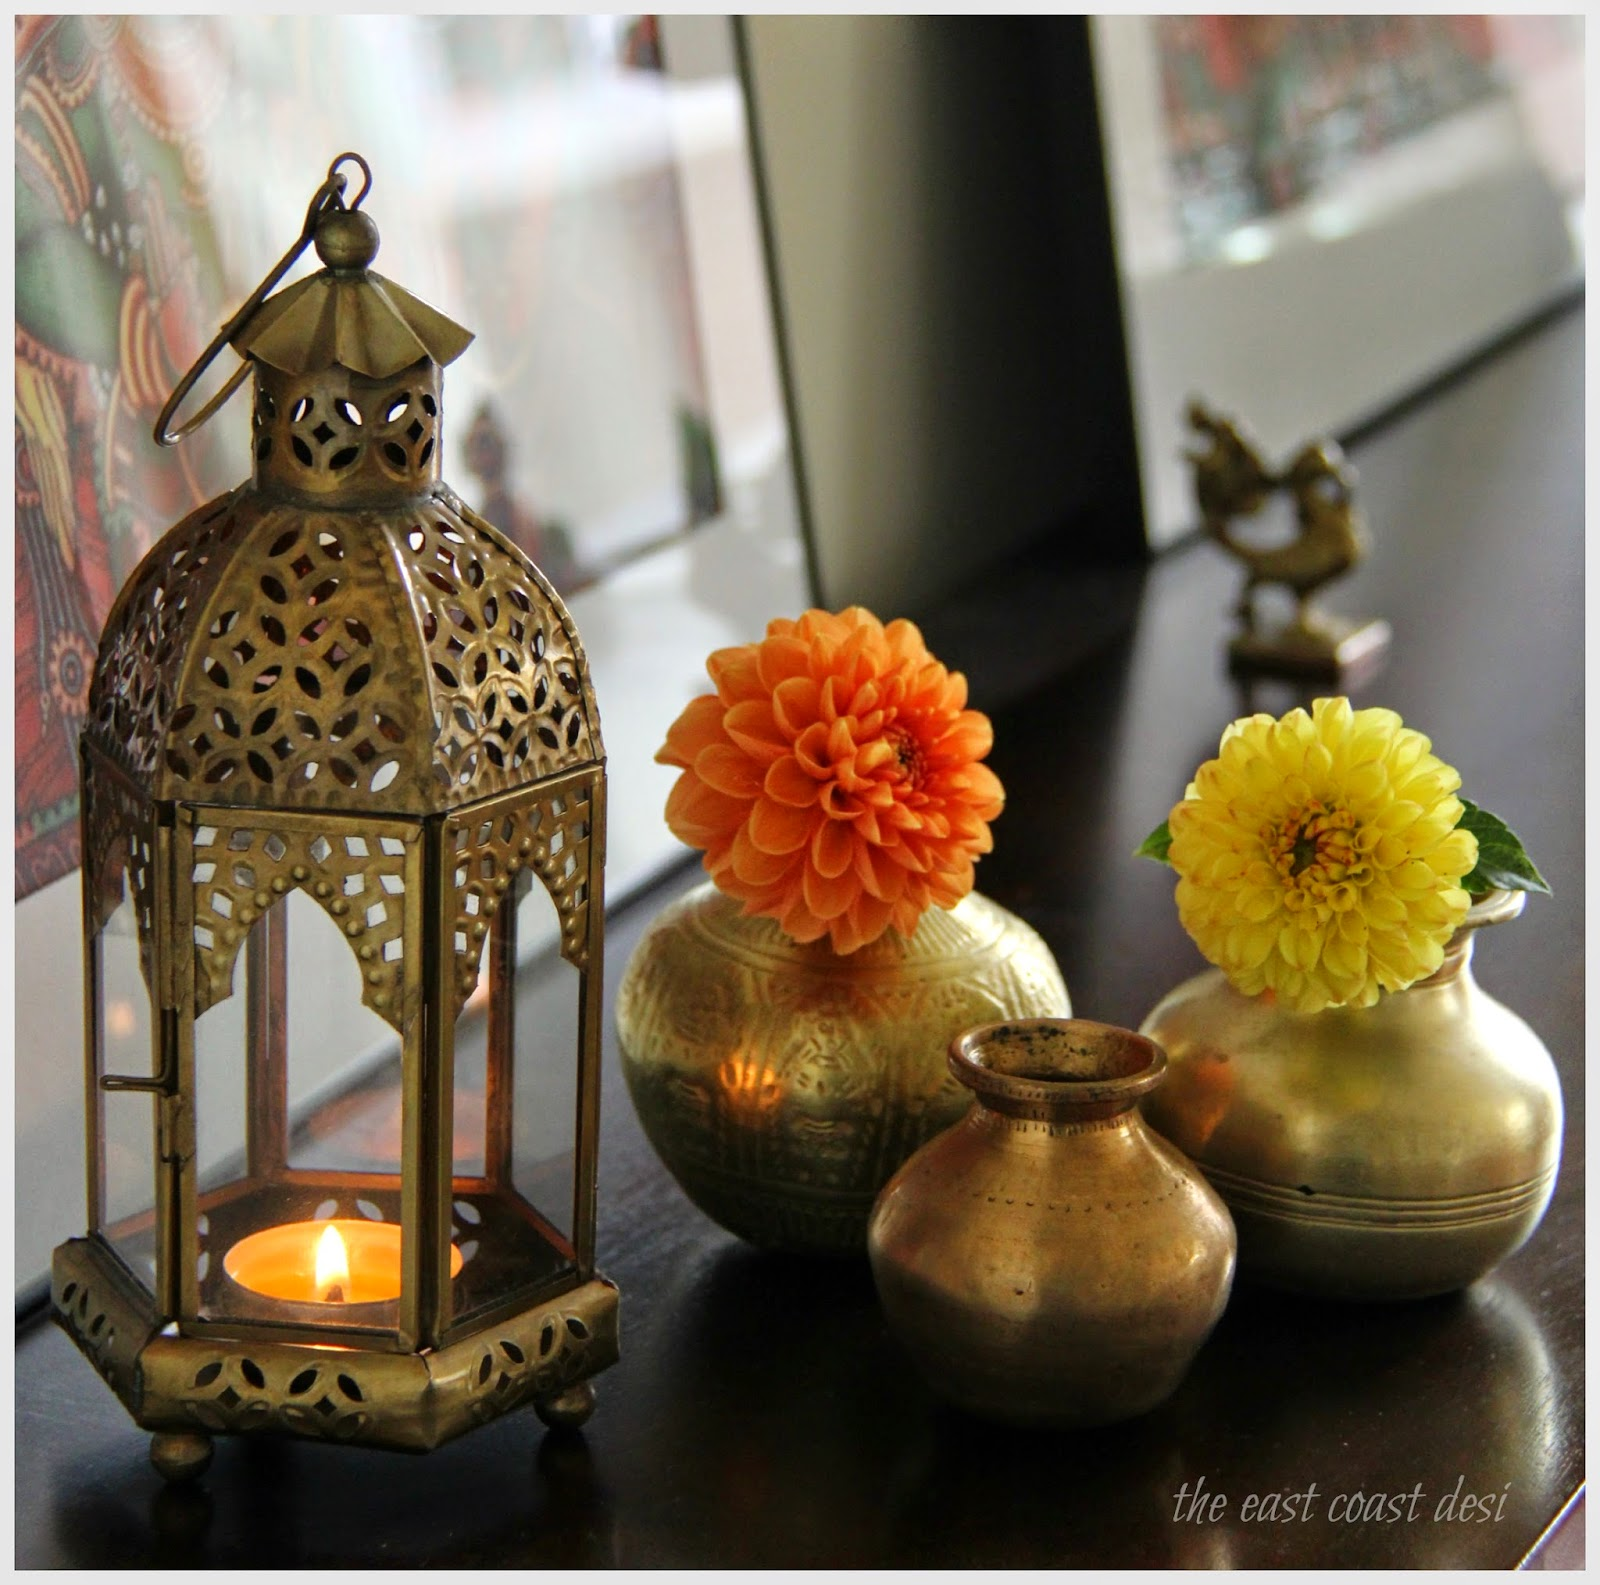 The east coast desi october 2014 for Home decorations ideas for diwali